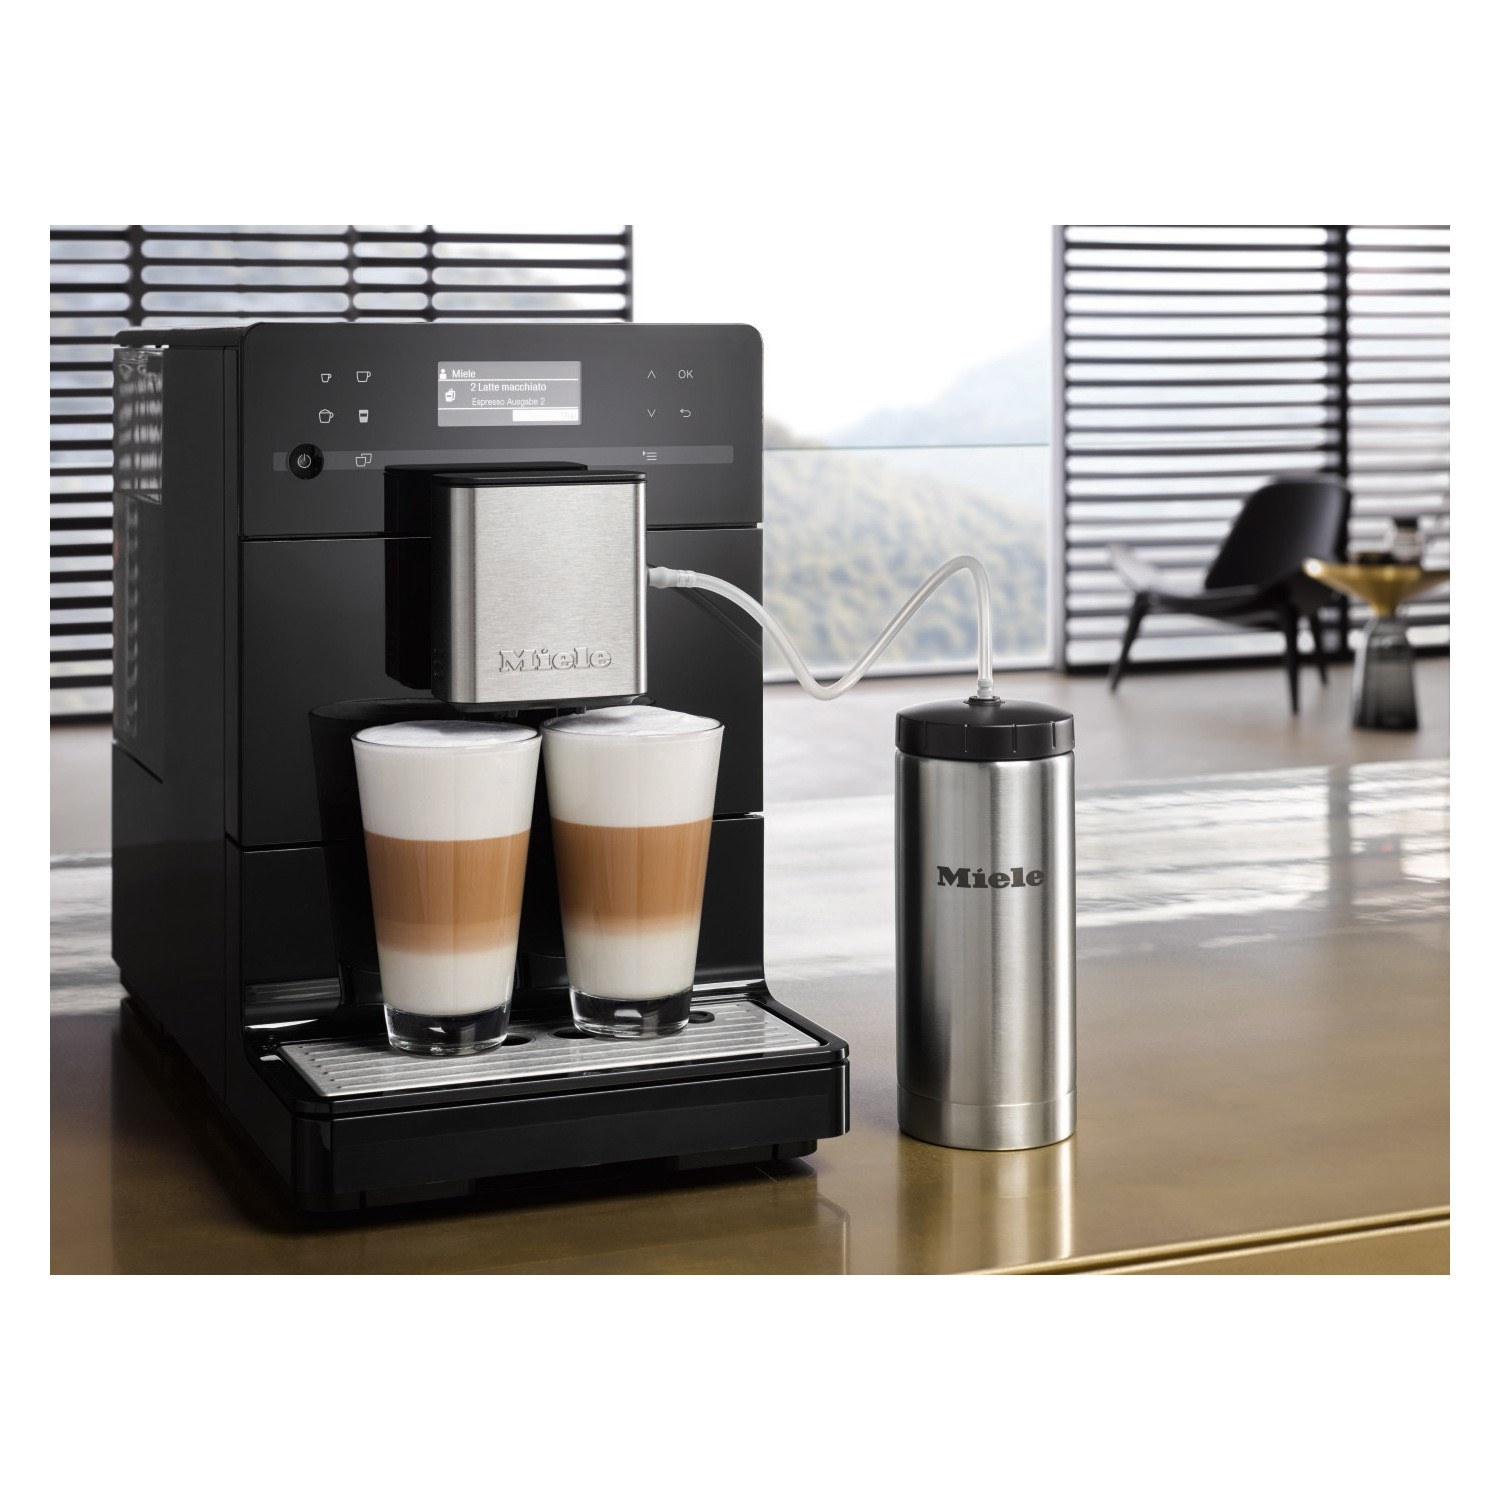 Miele Cm5300 Bean To Cup Coffee Machine Obsidian Black